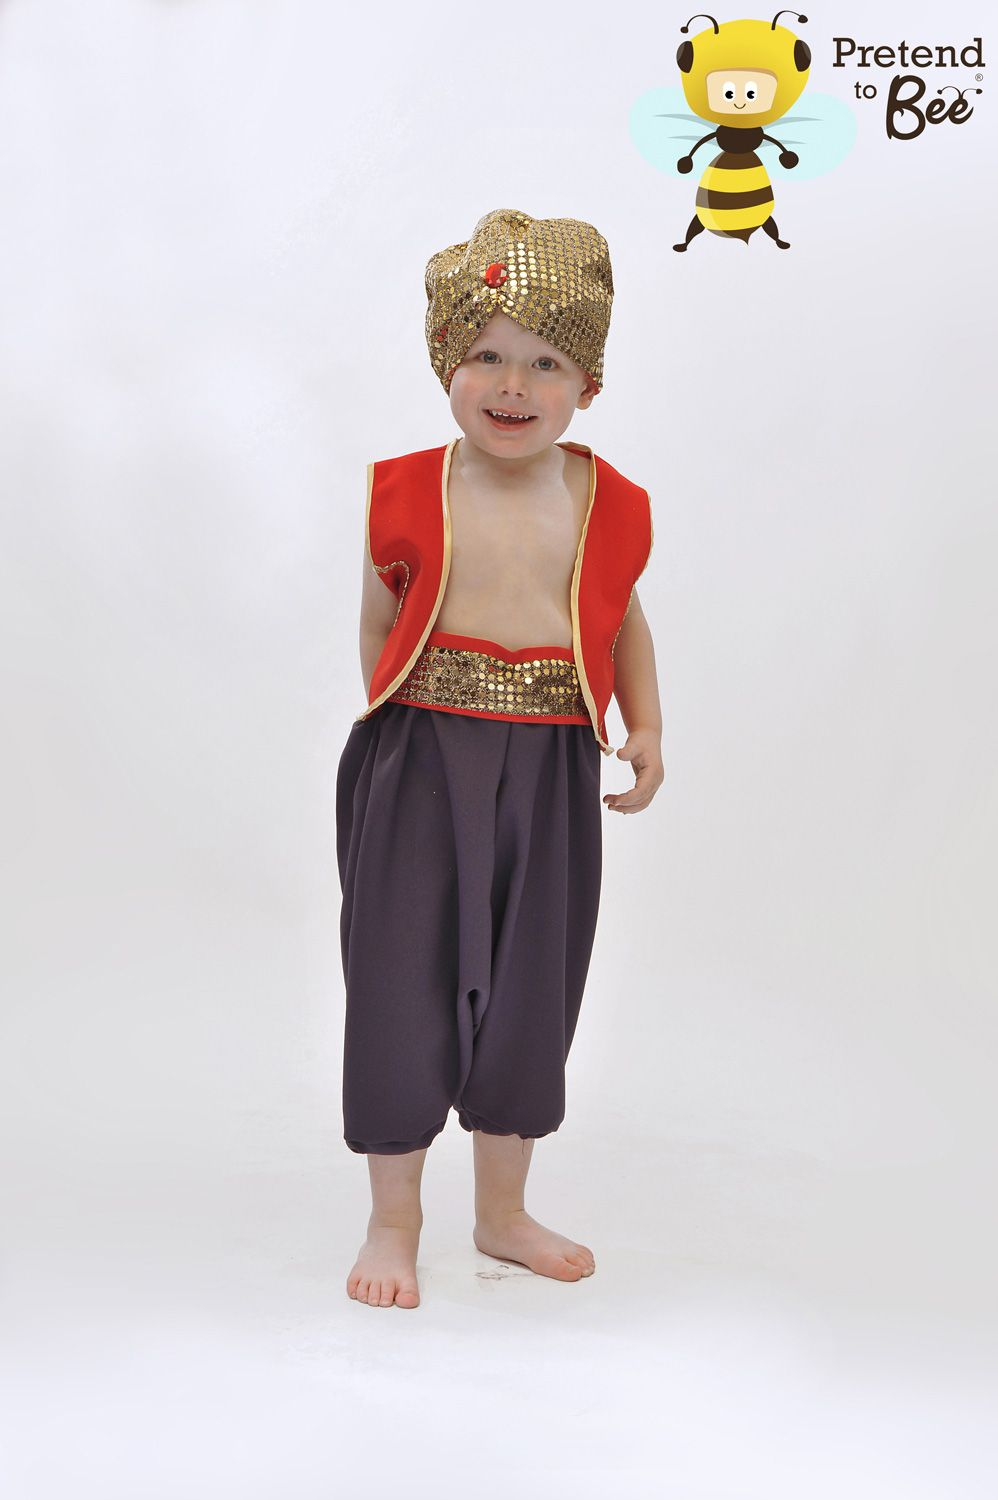 11 hours ago· Browse our huge collection of fancy dress and kids' party costumes. Whatever style your child loves, you'll find it here. Browse online and shop today.